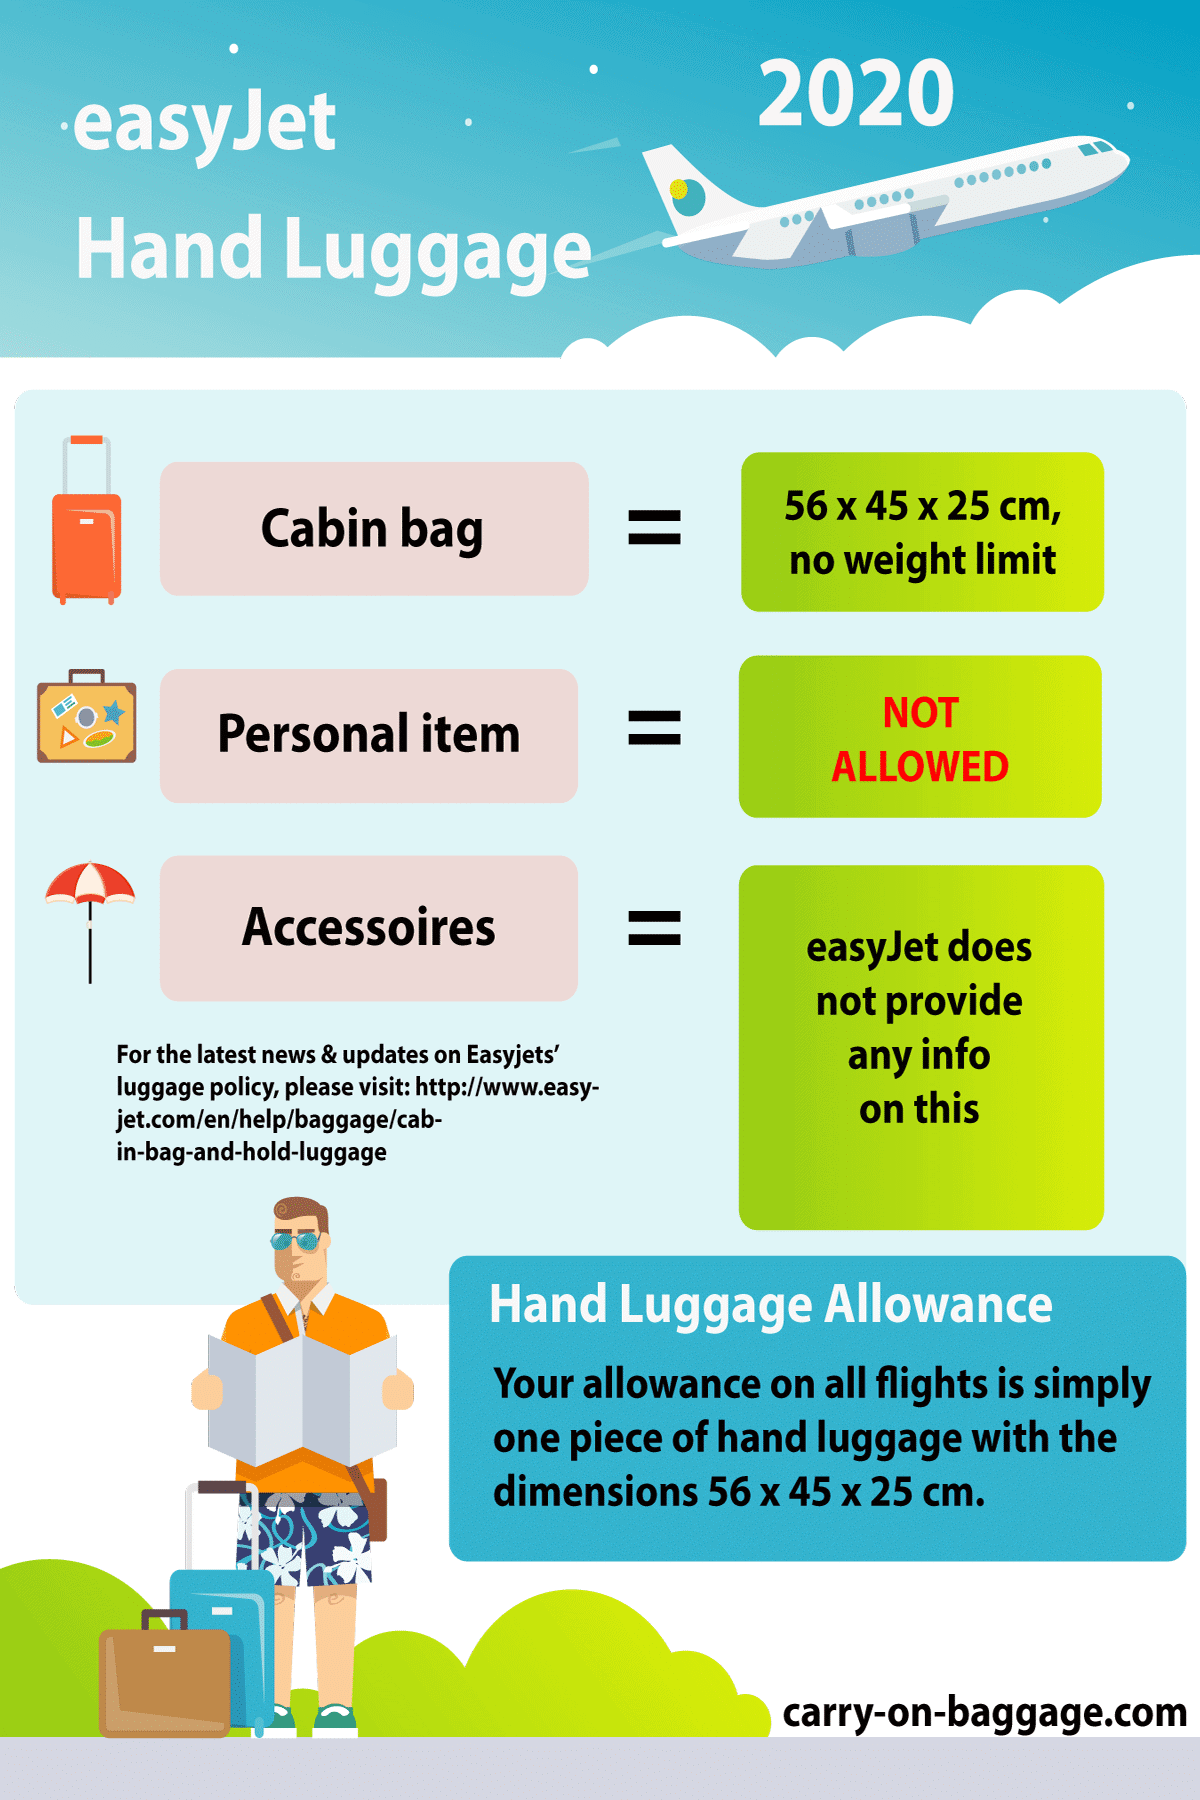 EasyJet Hand Luggage Allowance 2020